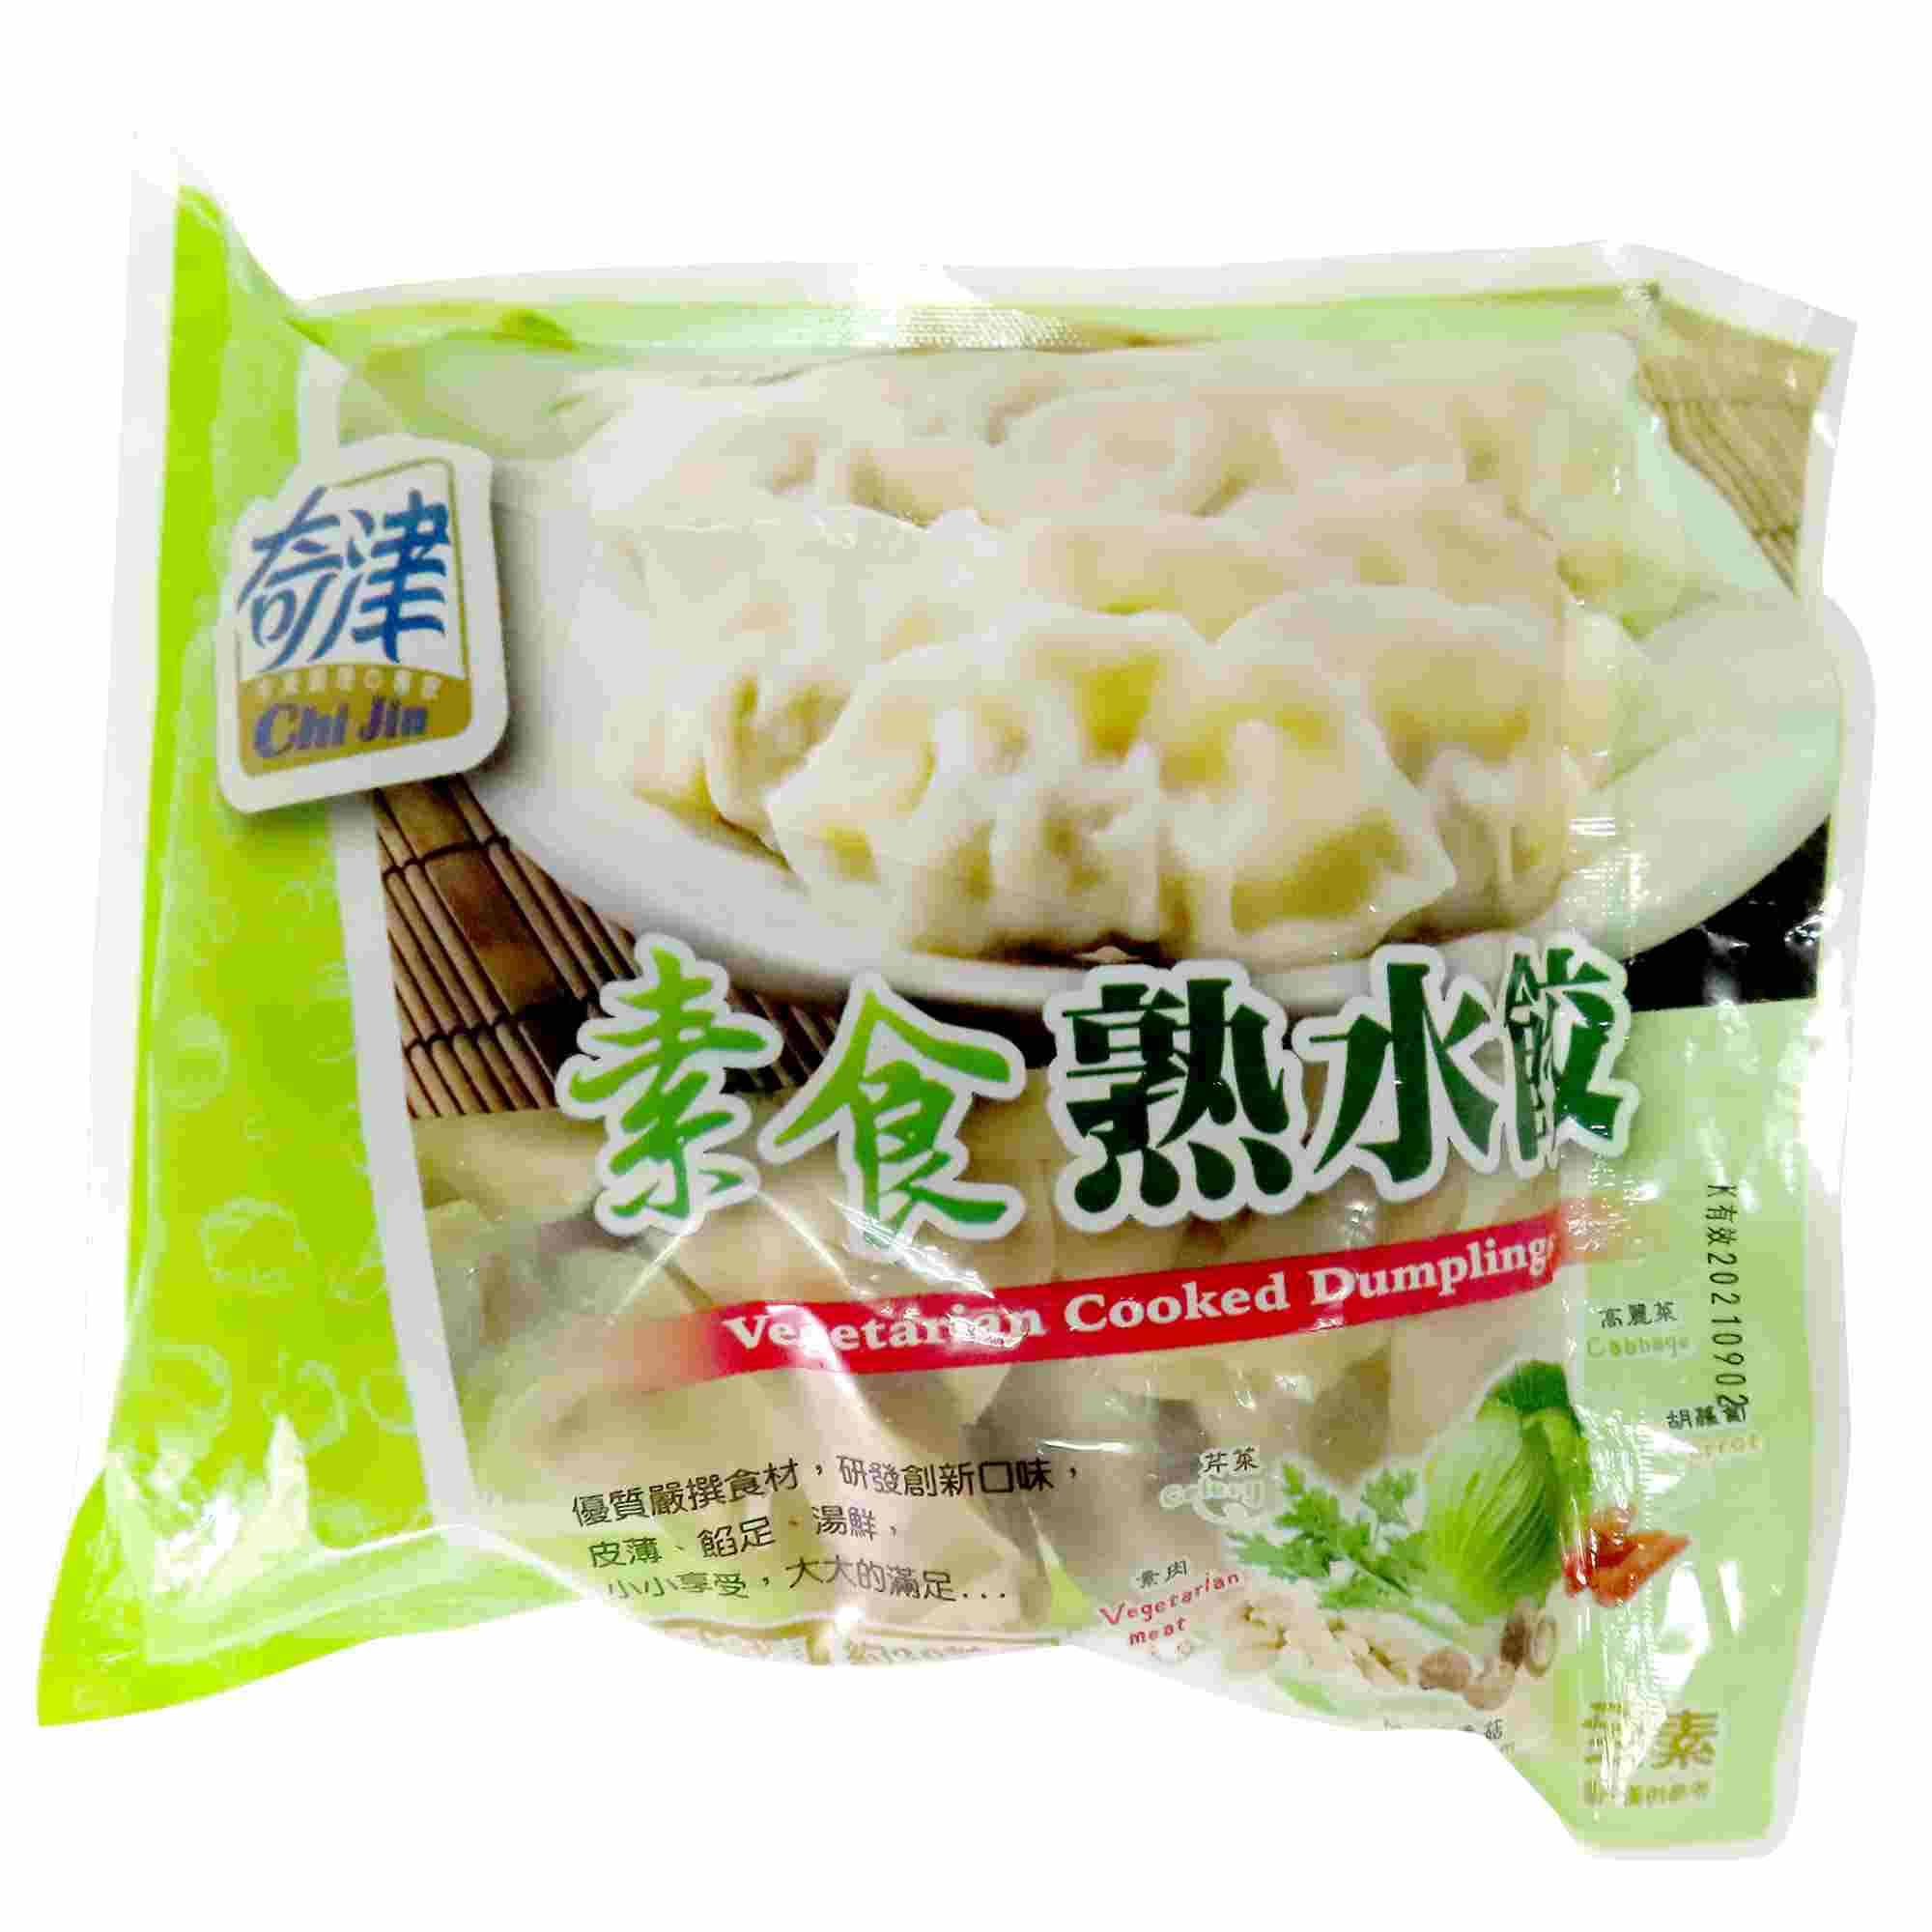 Image Vegetarian Cooked Dumplings 奇津 - 熟水饺 510grams